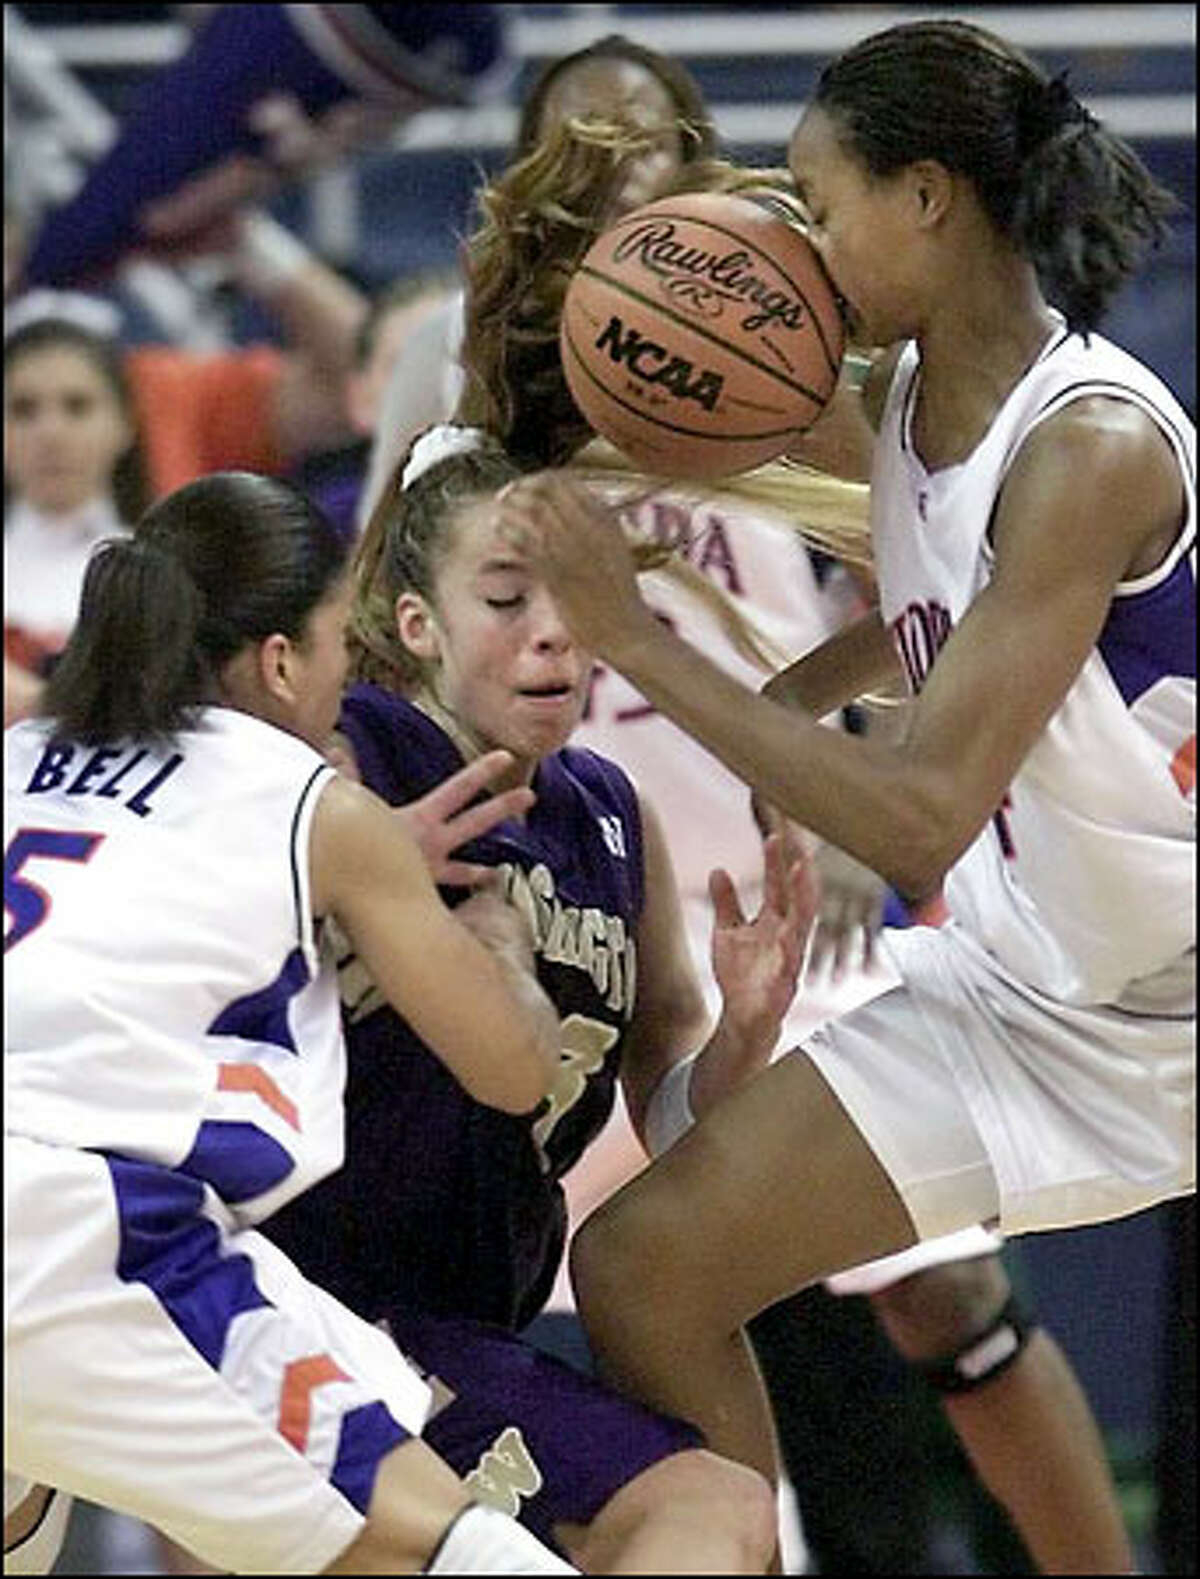 Tombi Bell and Tamara Stocks battle Guiliana Mendiola for the ball in the second half.